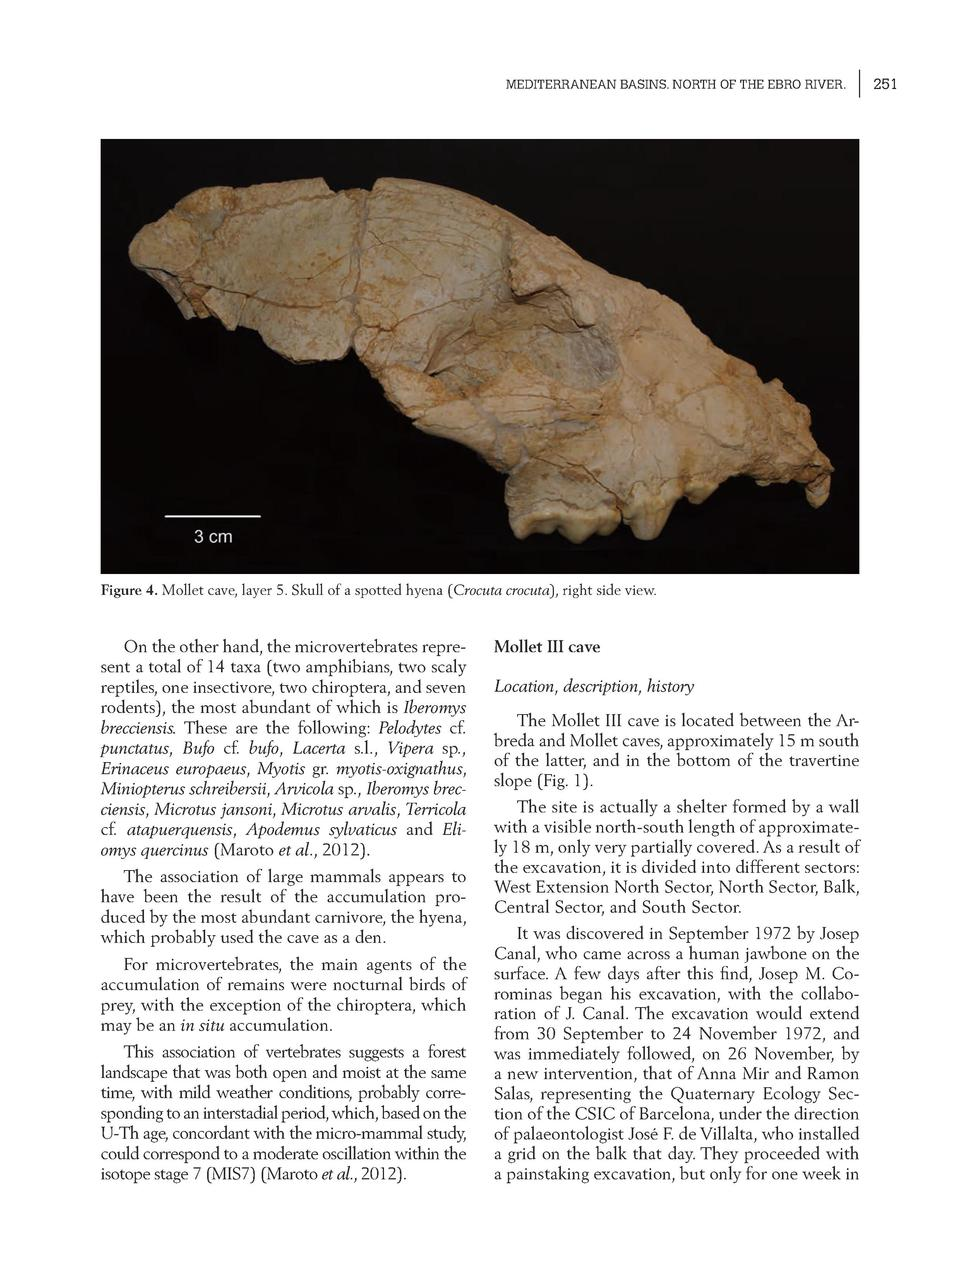 MEDITERRANEAN BASINS. NORTH OF THE EBRO RIVER.  Figure 4. Mollet cave, layer 5. Skull of a spotted hyena  Crocuta crocuta ...